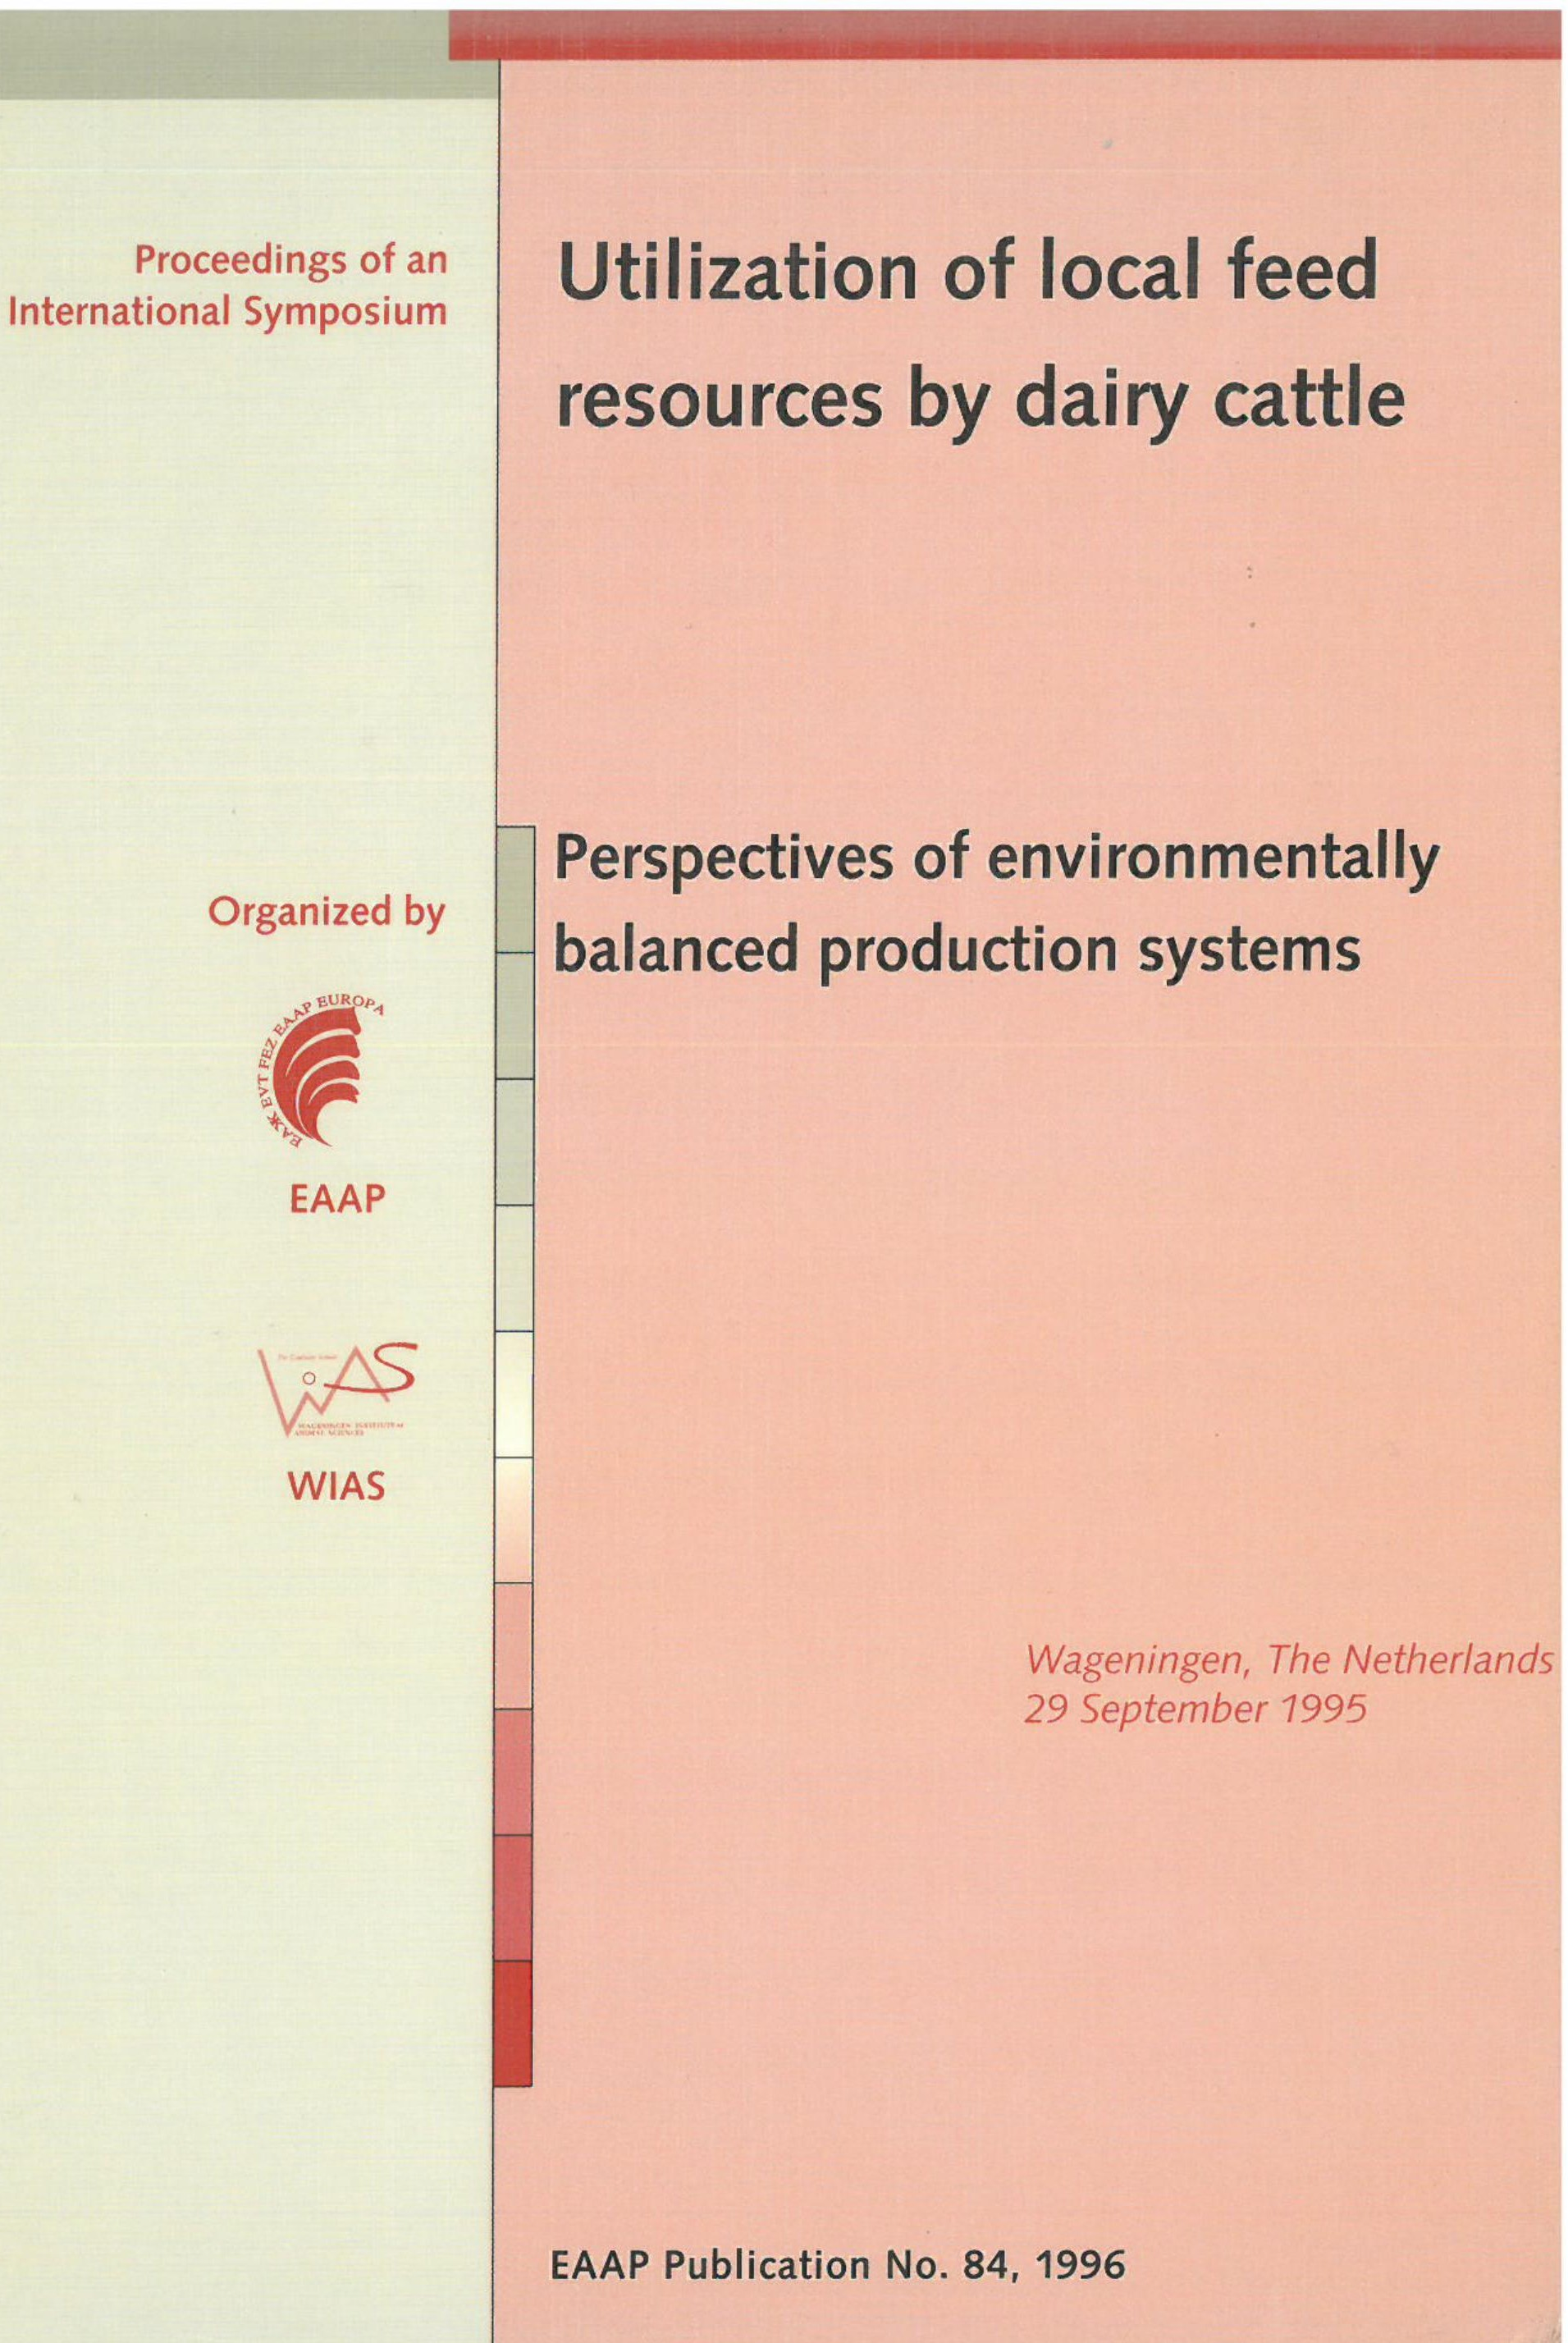 Utilization of local feed resources by dairy cattle – Perspectives of environmentally balanced production systems